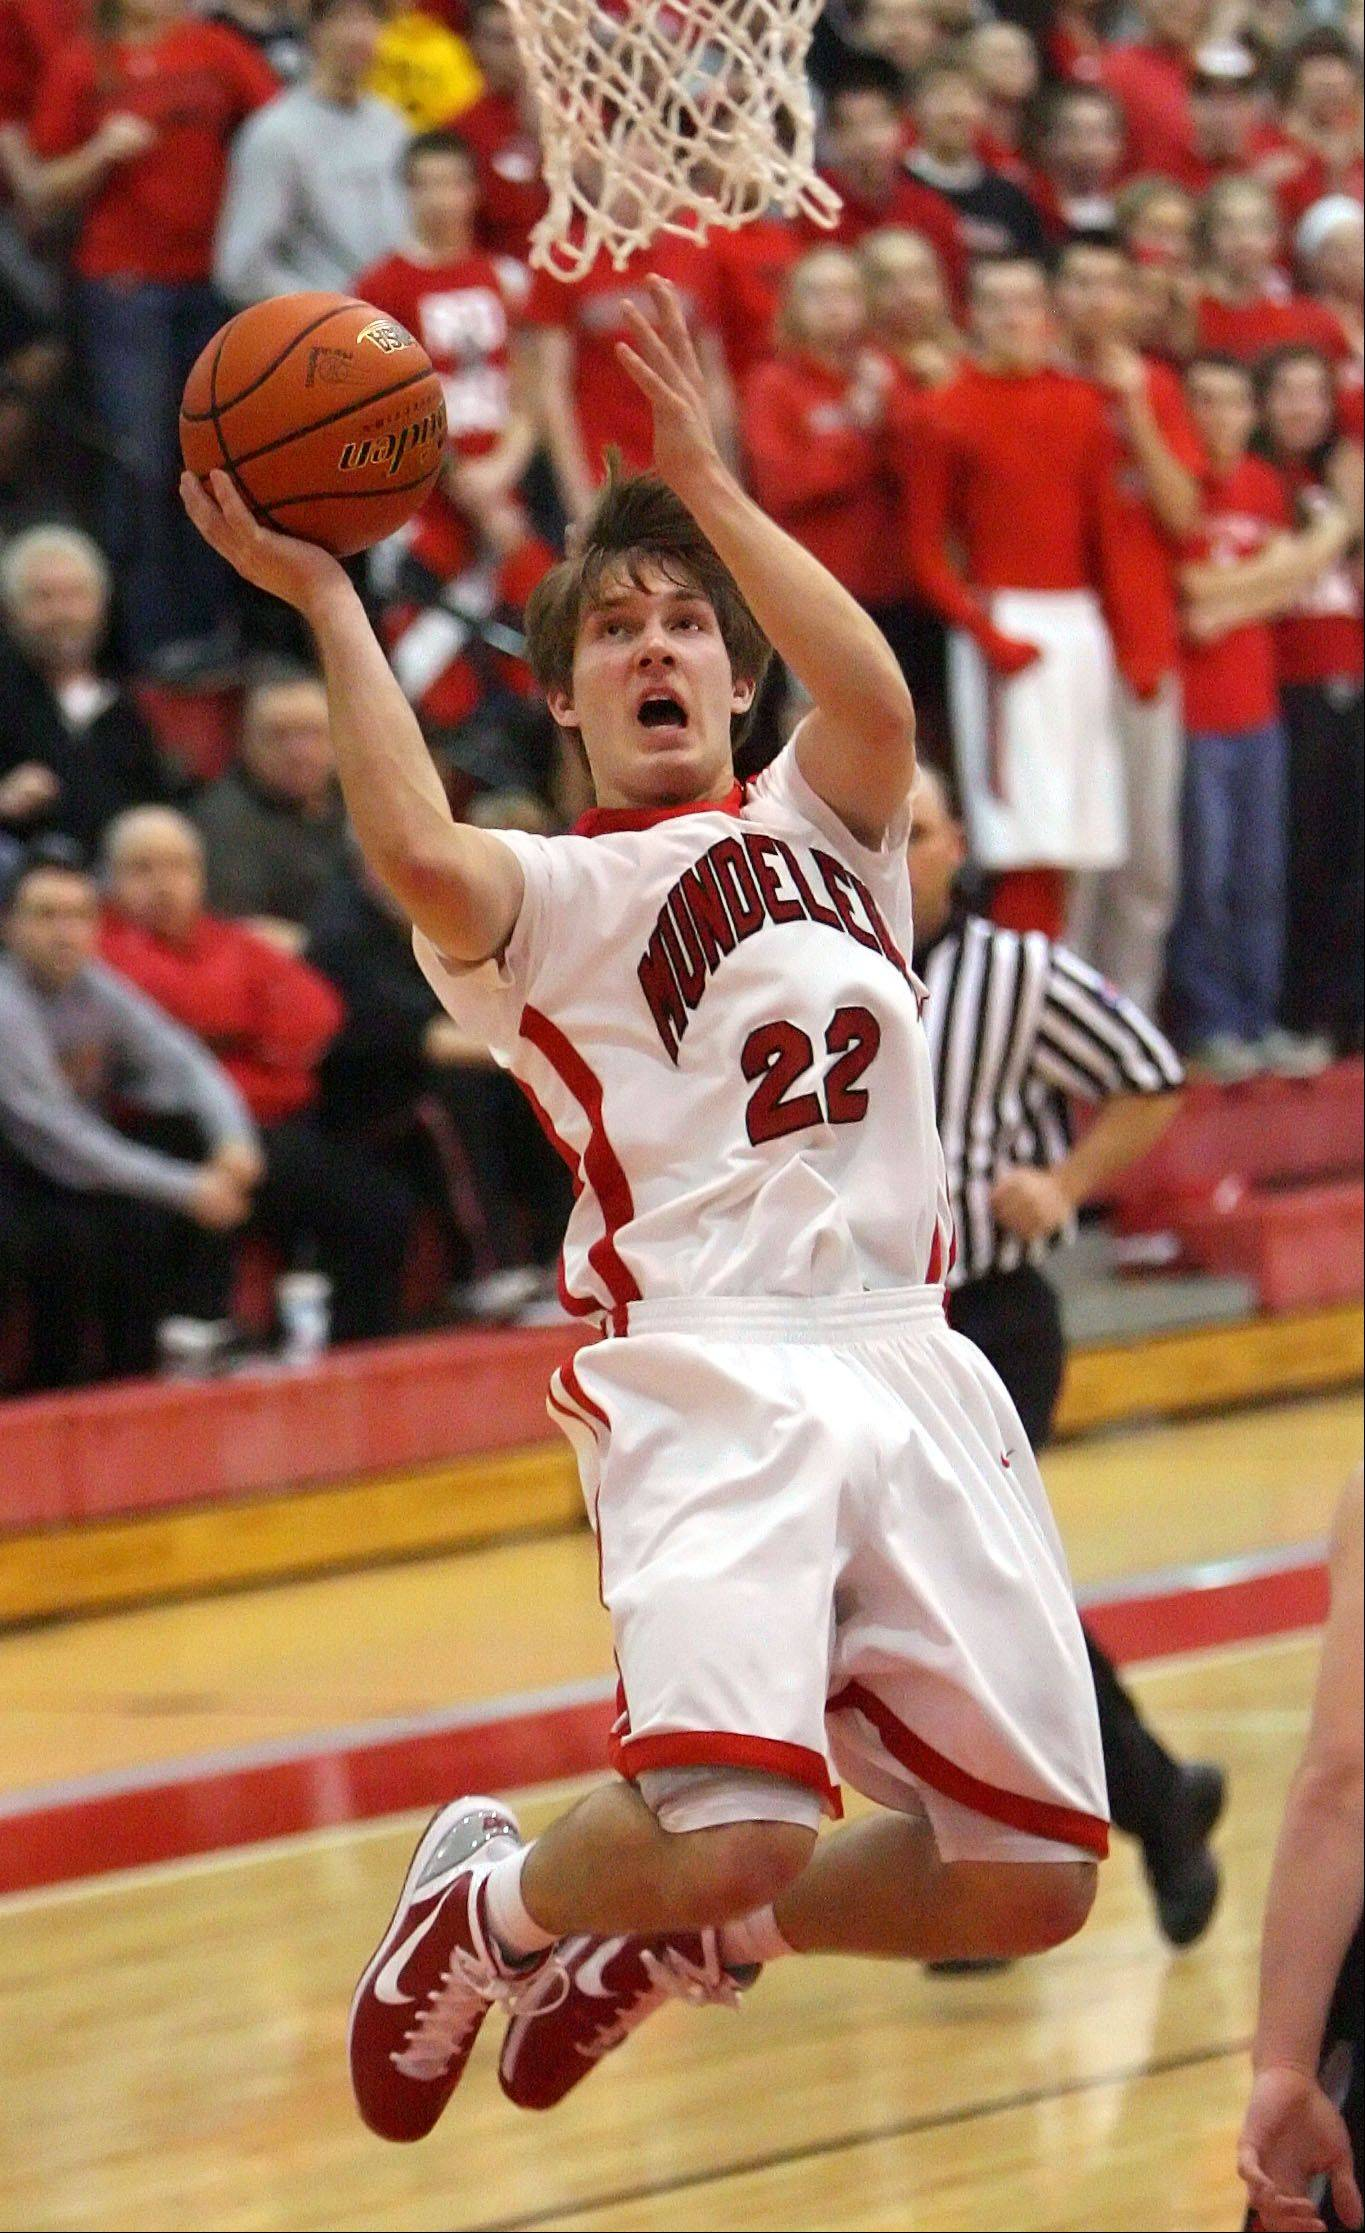 Mundelein's Robert Knar, here driving to hoop against Deerfield in sectional play at Barrington, has suffered a torn left ACL and is facing surgery. He'll likely miss most of his senior high school season.